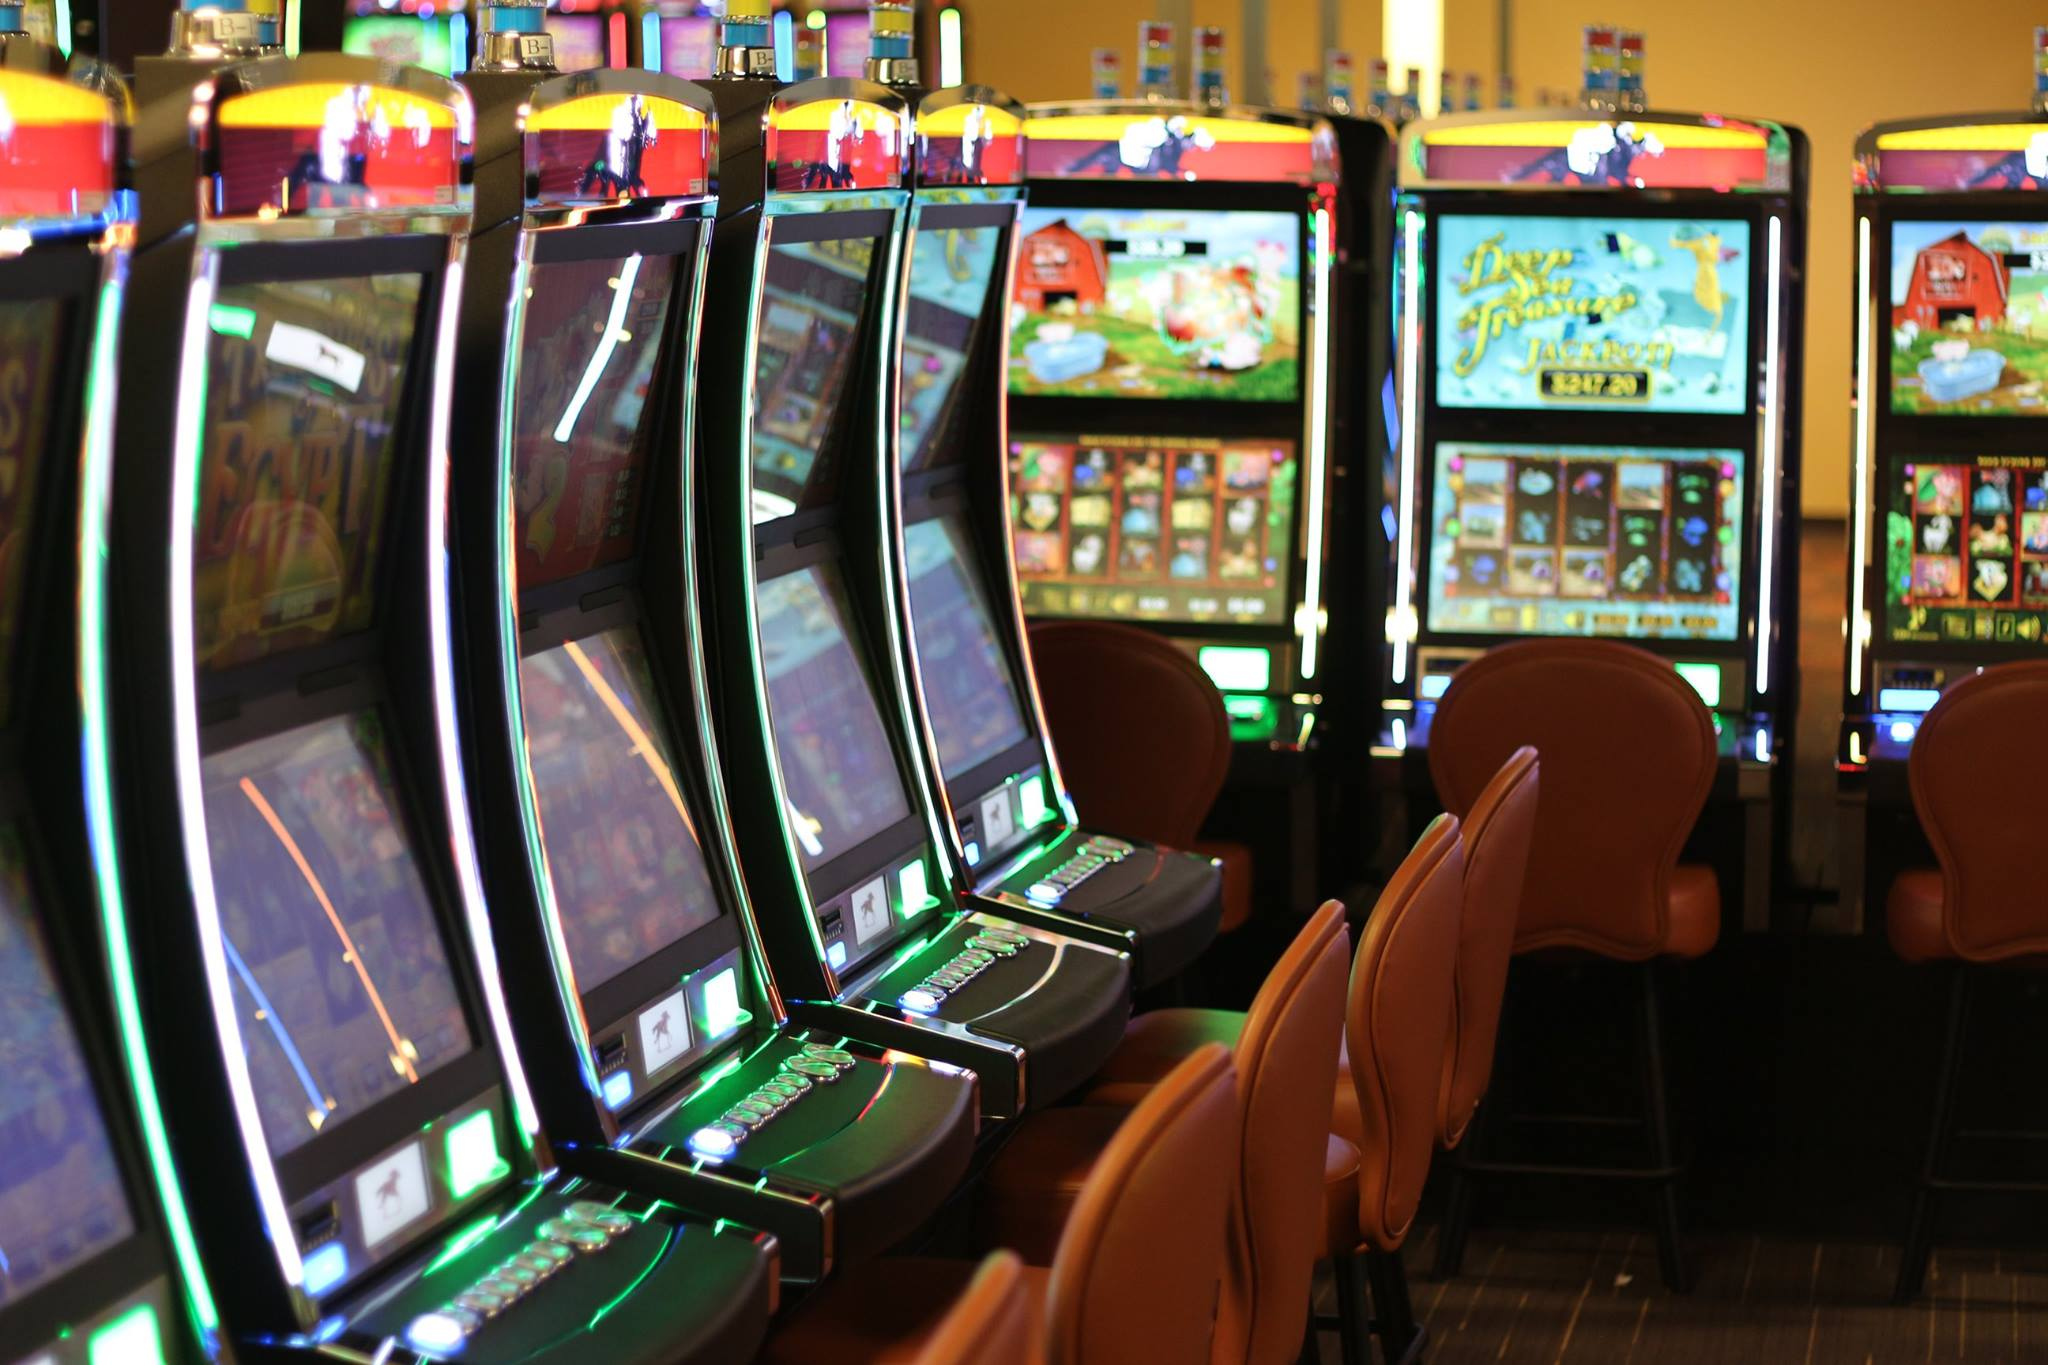 Coeur d'Alene Tribe asks court to enforce ban on gaming devices